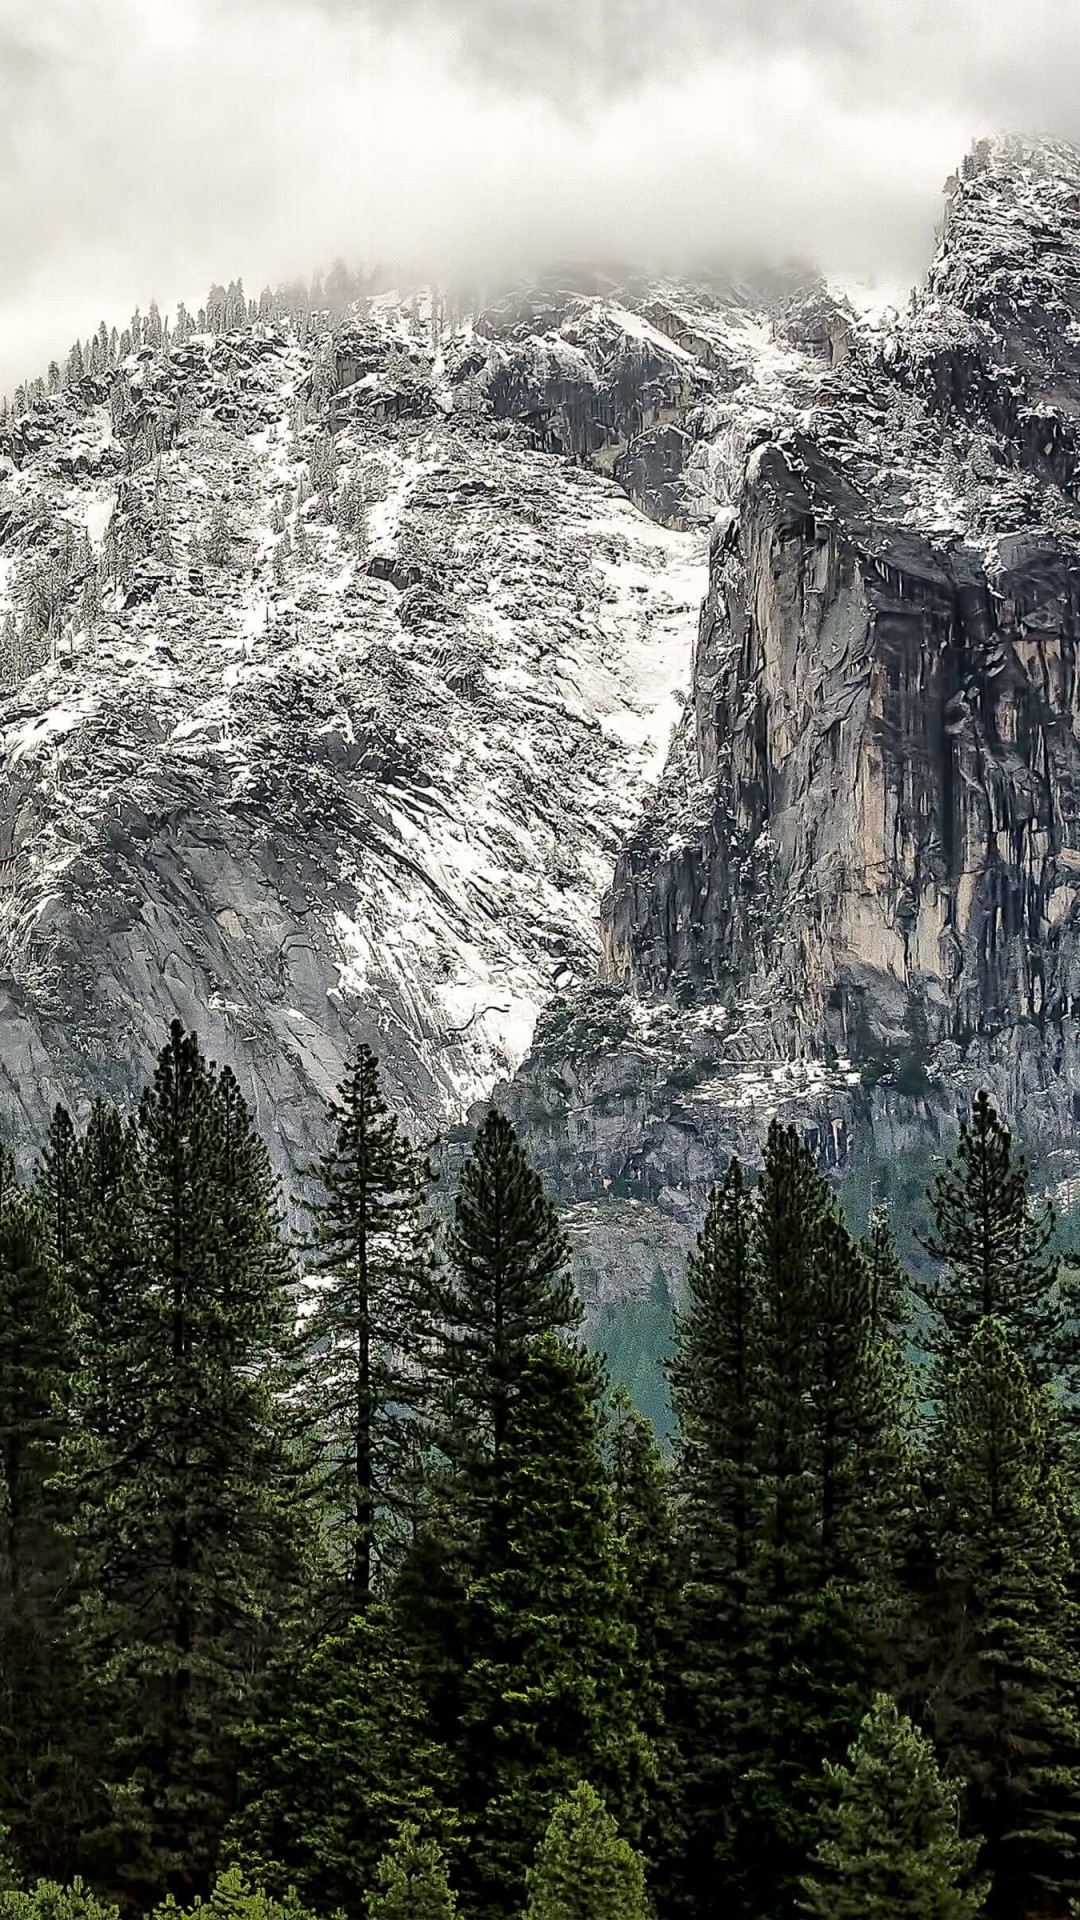 Winter Day at Yosemite National Park Wallpaper for LG G2